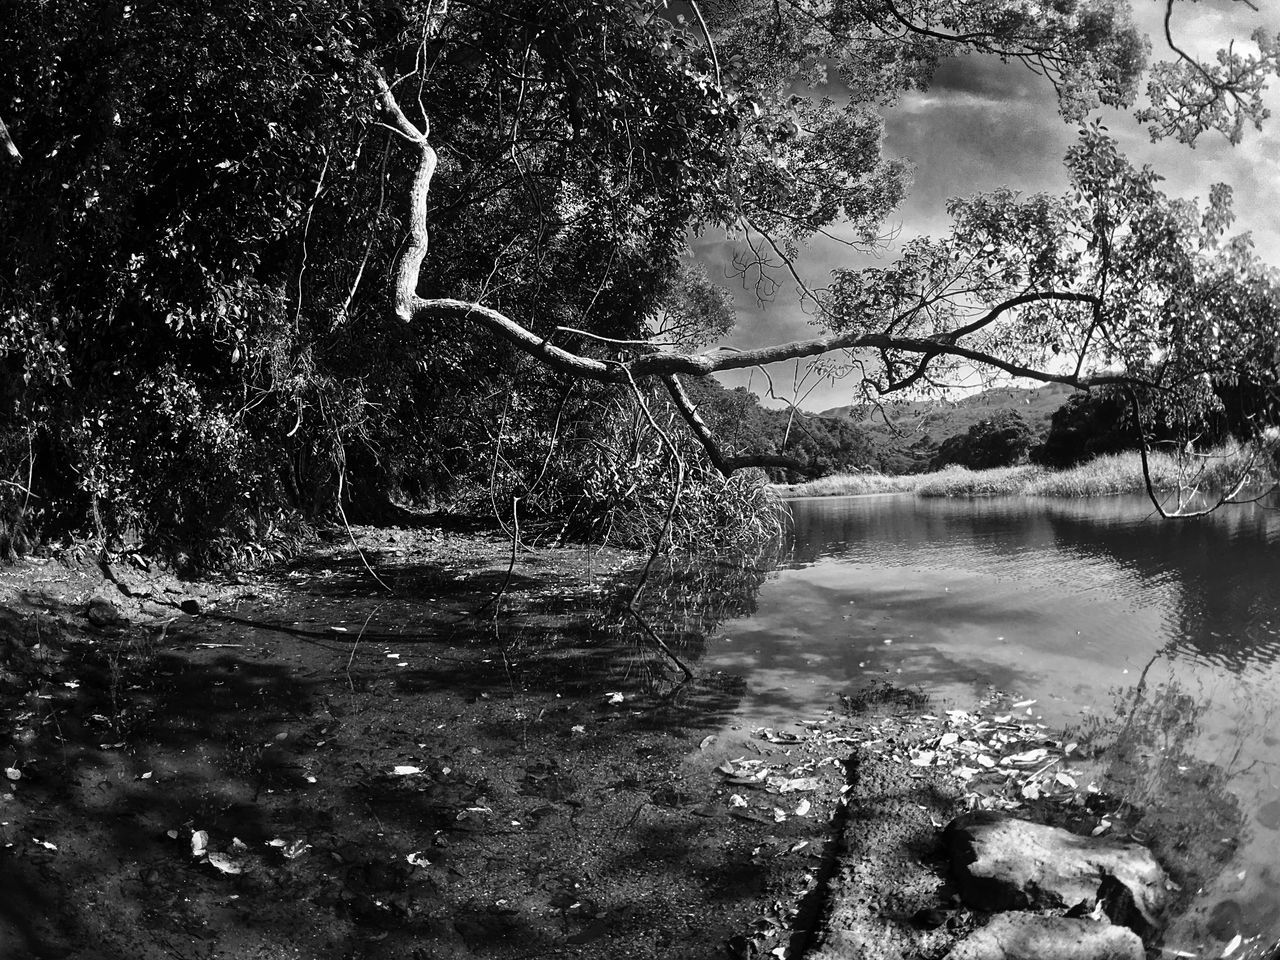 Tree Water Nature Tranquility Beauty In Nature Scenics Reflection Tranquil Scene Outdoors Day Branch Black & White Black And White Light And Shadow Sun Light Through Trees IPhoneography Moment Lens Superfish Landscapes Sunlight And Shadow Growth Non-urban Scene Stream - Flowing Water Tree Trunk Sky